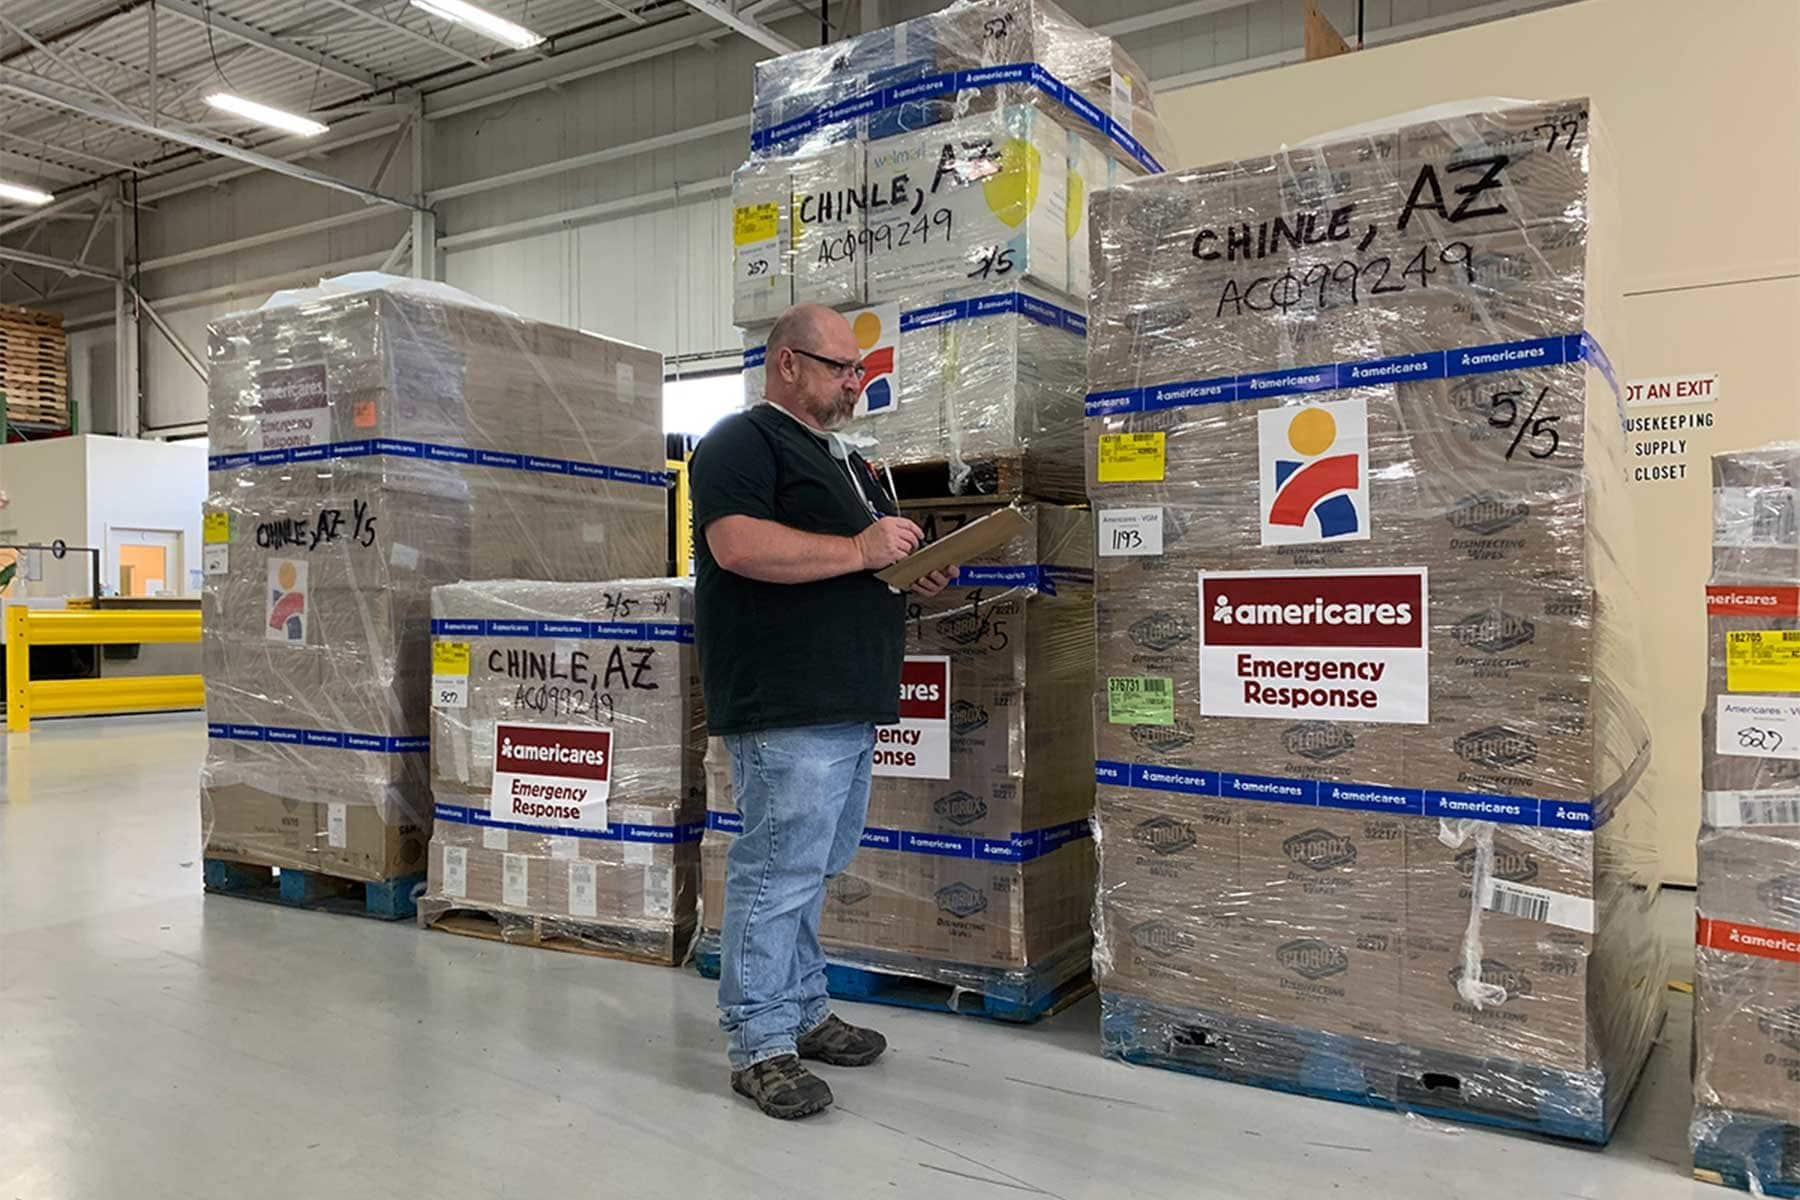 Workers at Americares distribution center in Stamford, Conn., prepare shipments of personal protective gear, disinfectants and hygiene products for Native American communities affected by the COVID-19 pandemic in Arizona, New Mexico and Nevada. Photo courtesy of Americares.